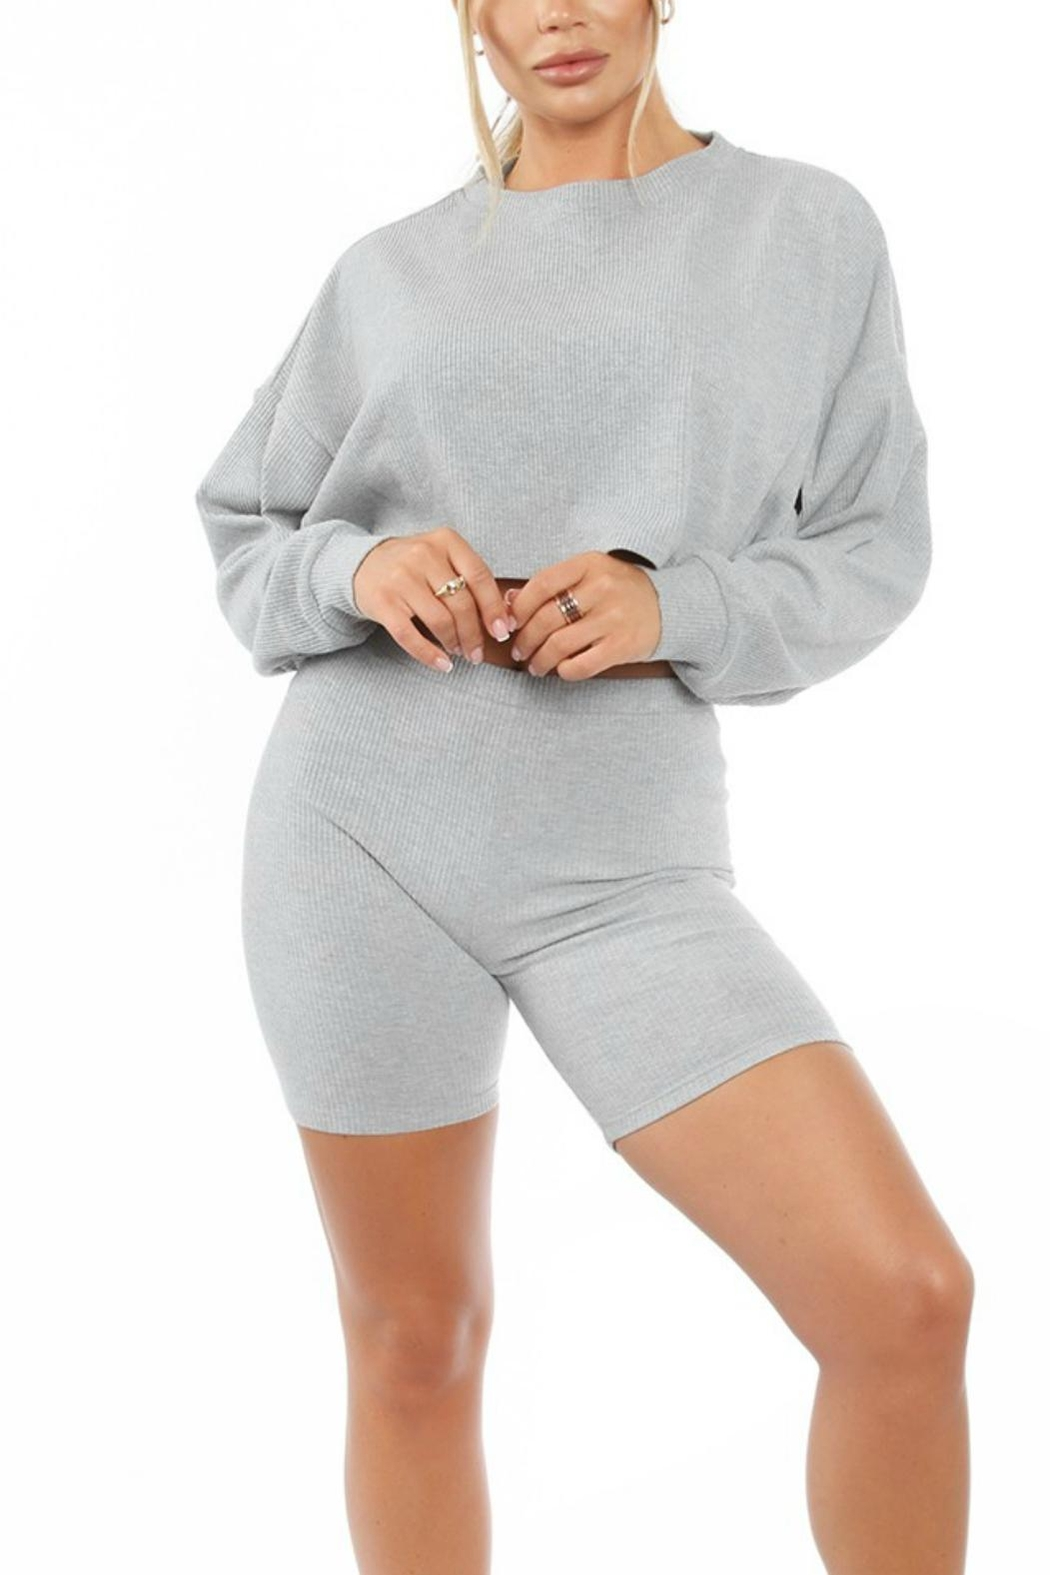 Pretty Little Things Thermal Boxy Top - Front Full Image